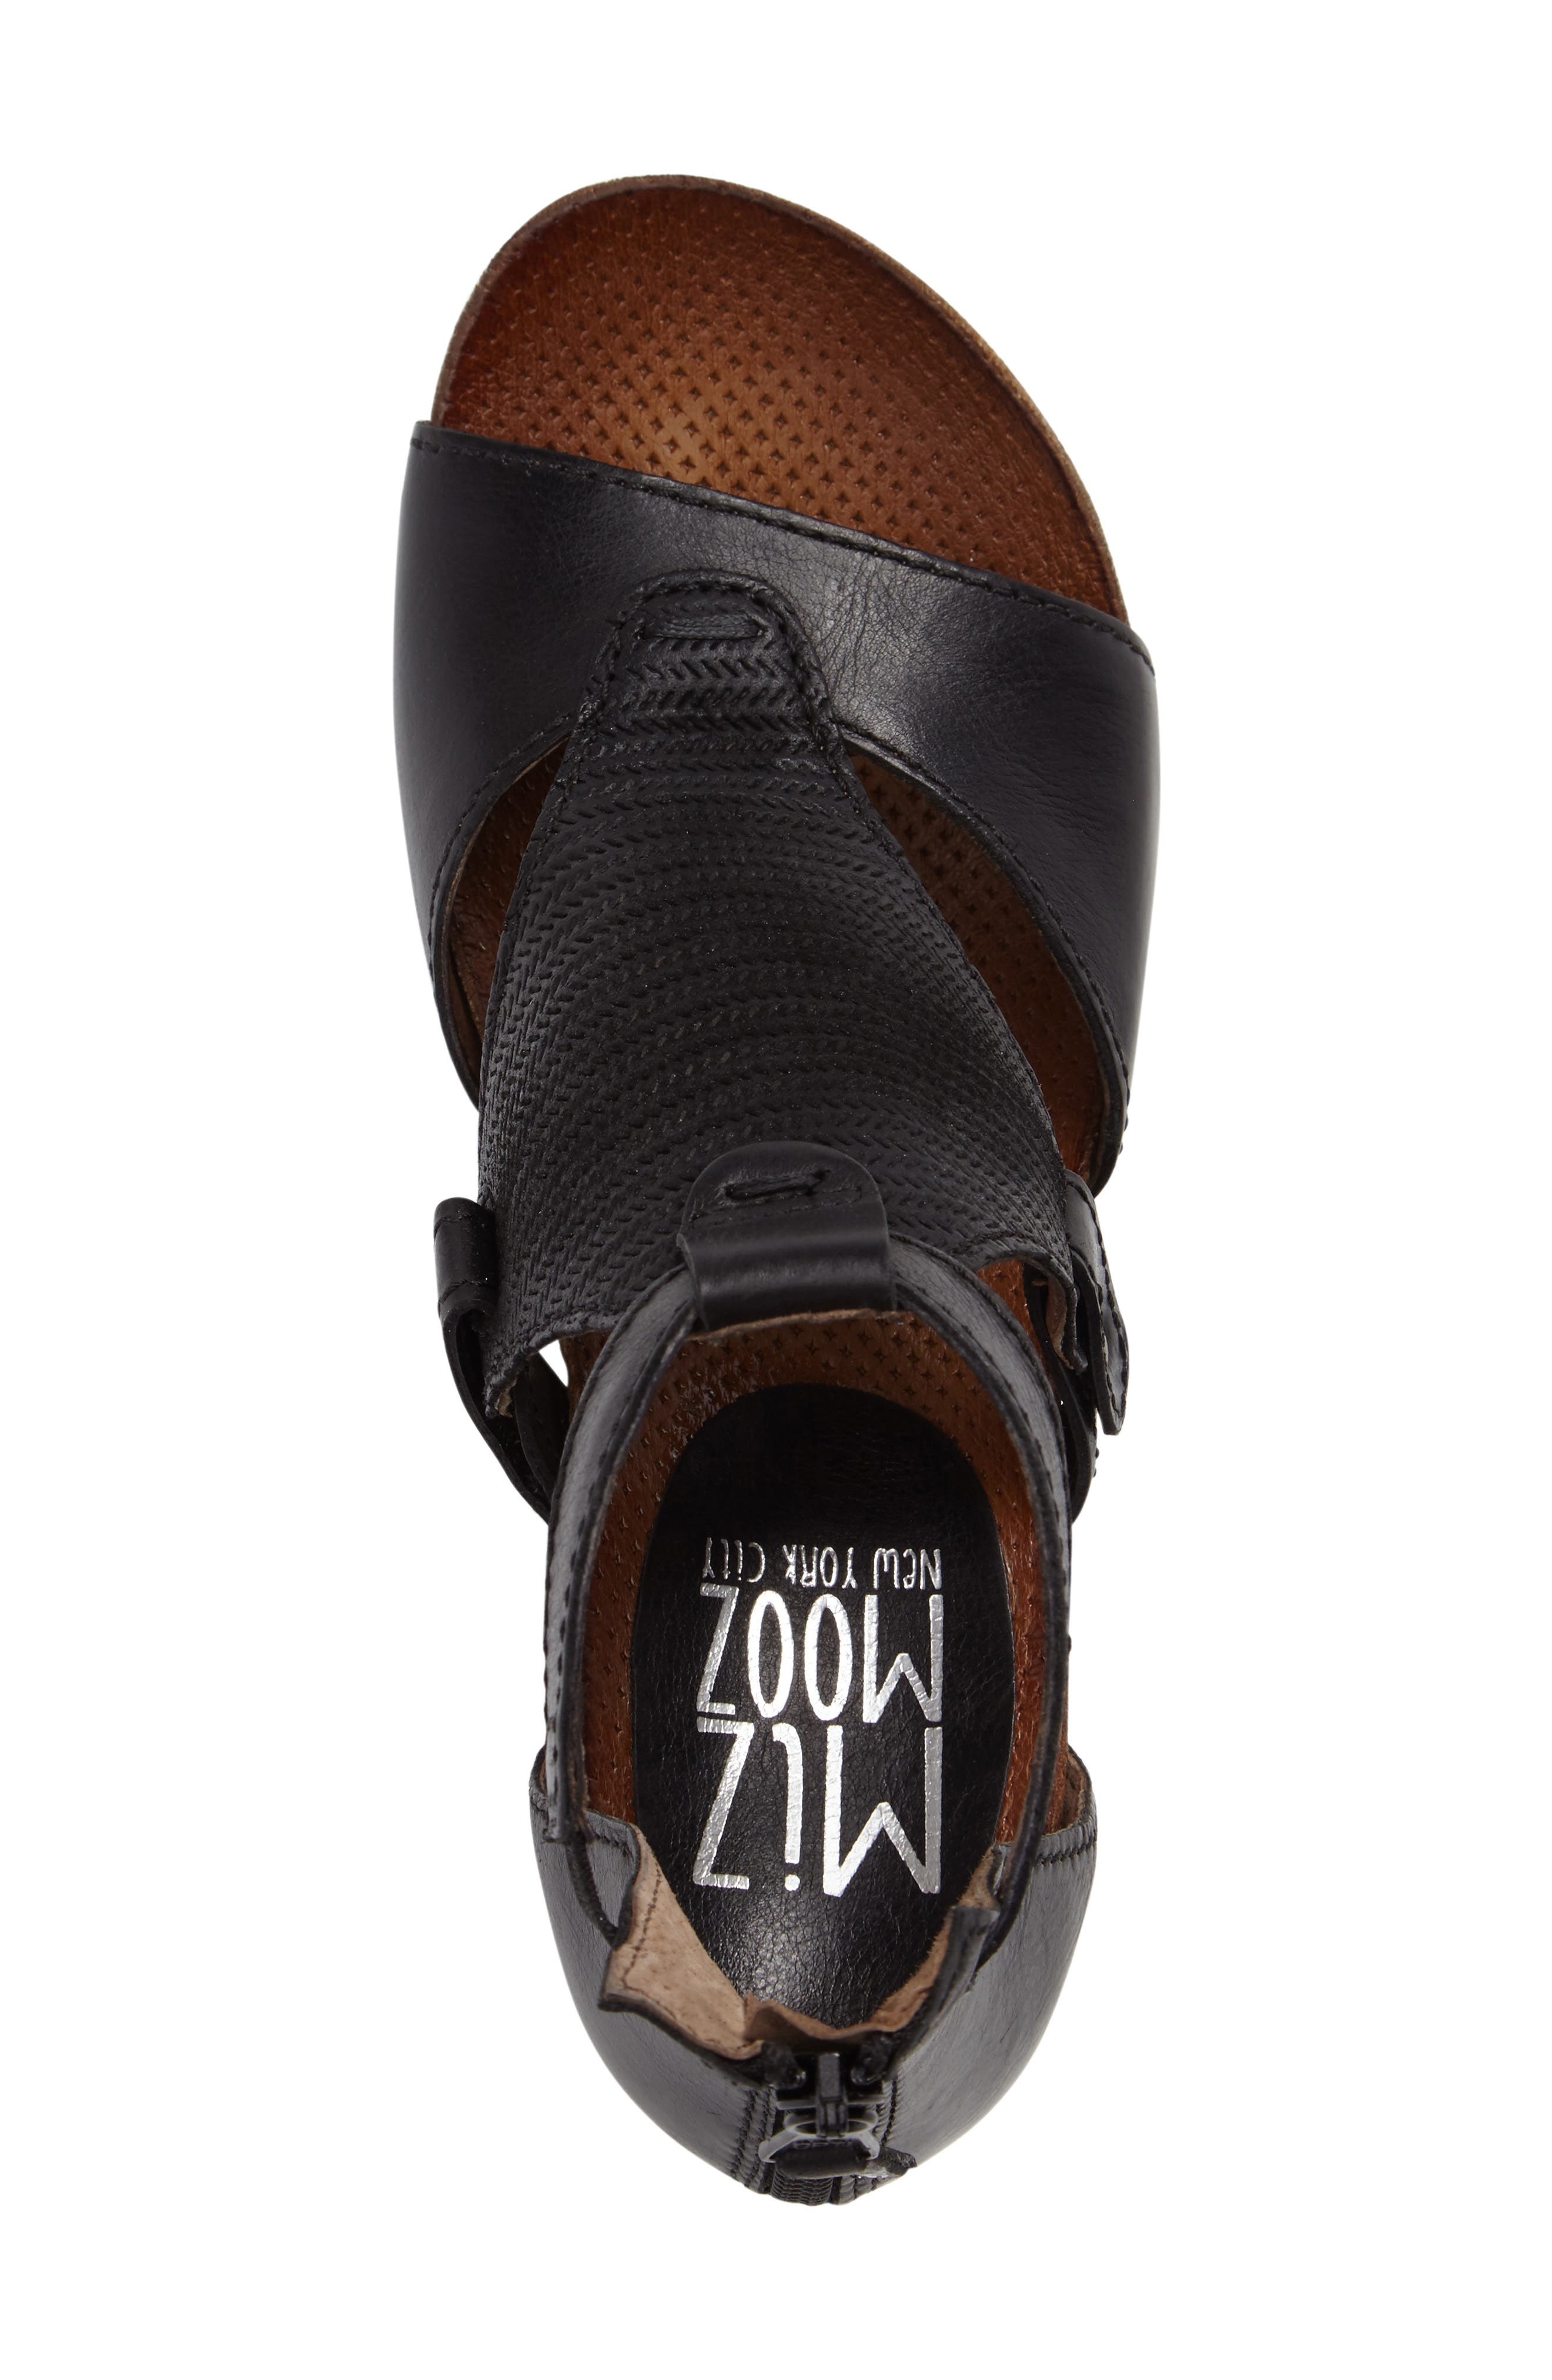 Alternate Image 3  - Miz Mooz Maisie Wedge Sandal (Women)